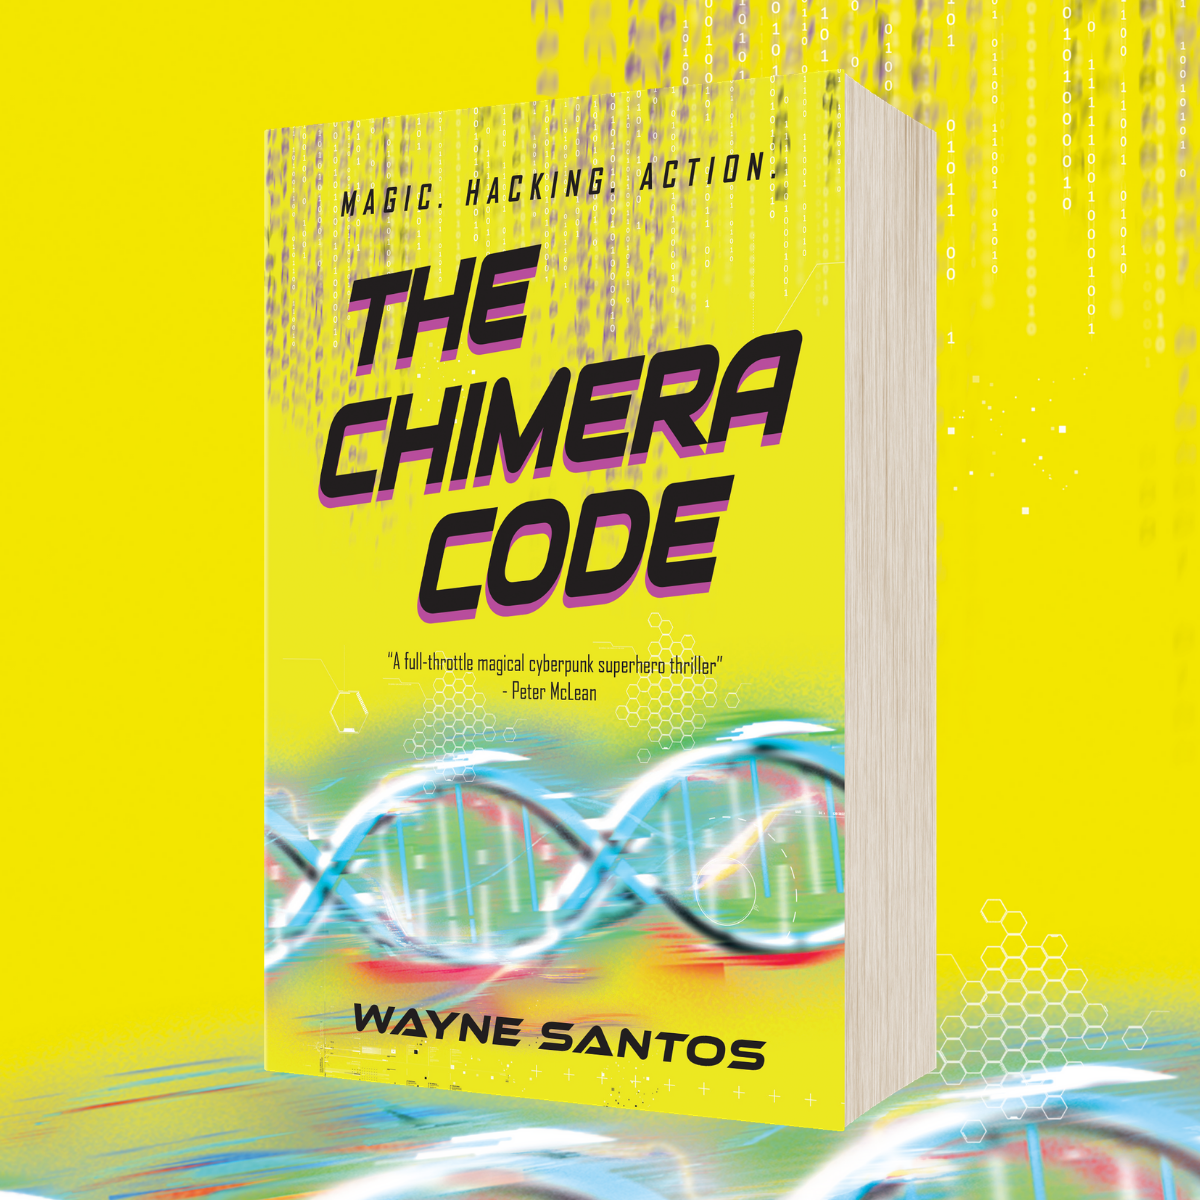 OUT NOW: The Chimera Code by Wayne Santos